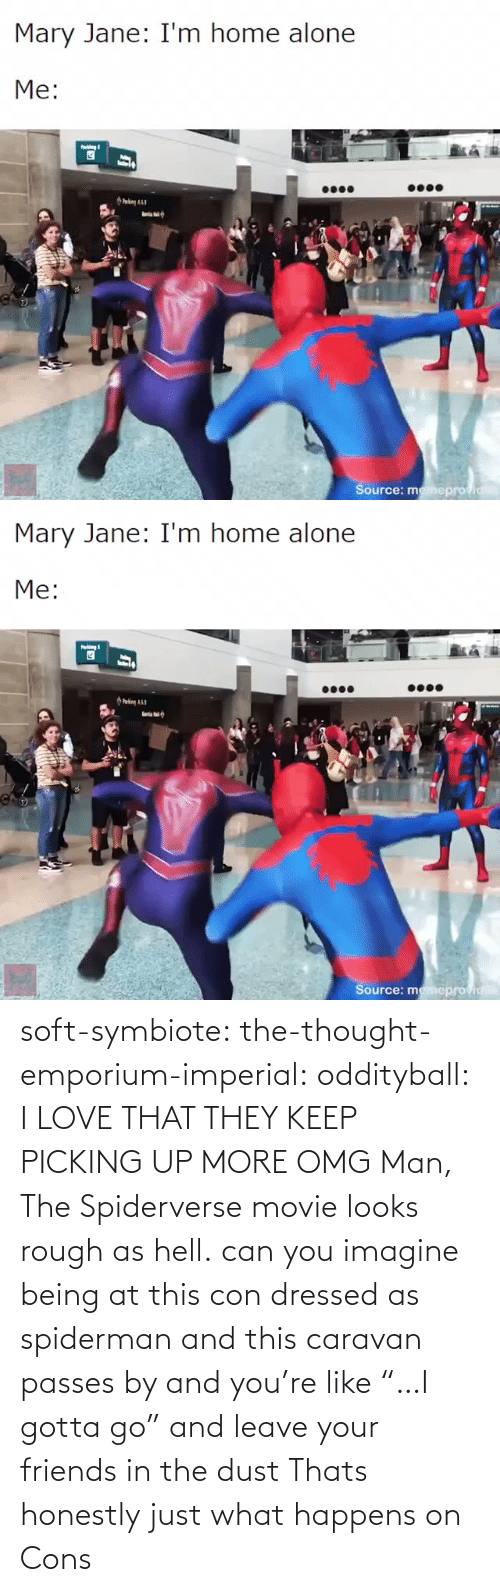 "Gotta: soft-symbiote: the-thought-emporium-imperial:  oddityball: I LOVE THAT THEY KEEP PICKING UP MORE OMG Man, The Spiderverse movie looks rough as hell.   can you imagine being at this con dressed as spiderman and this caravan passes by and you're like ""…I gotta go"" and leave your friends in the dust     Thats honestly just what happens on Cons"